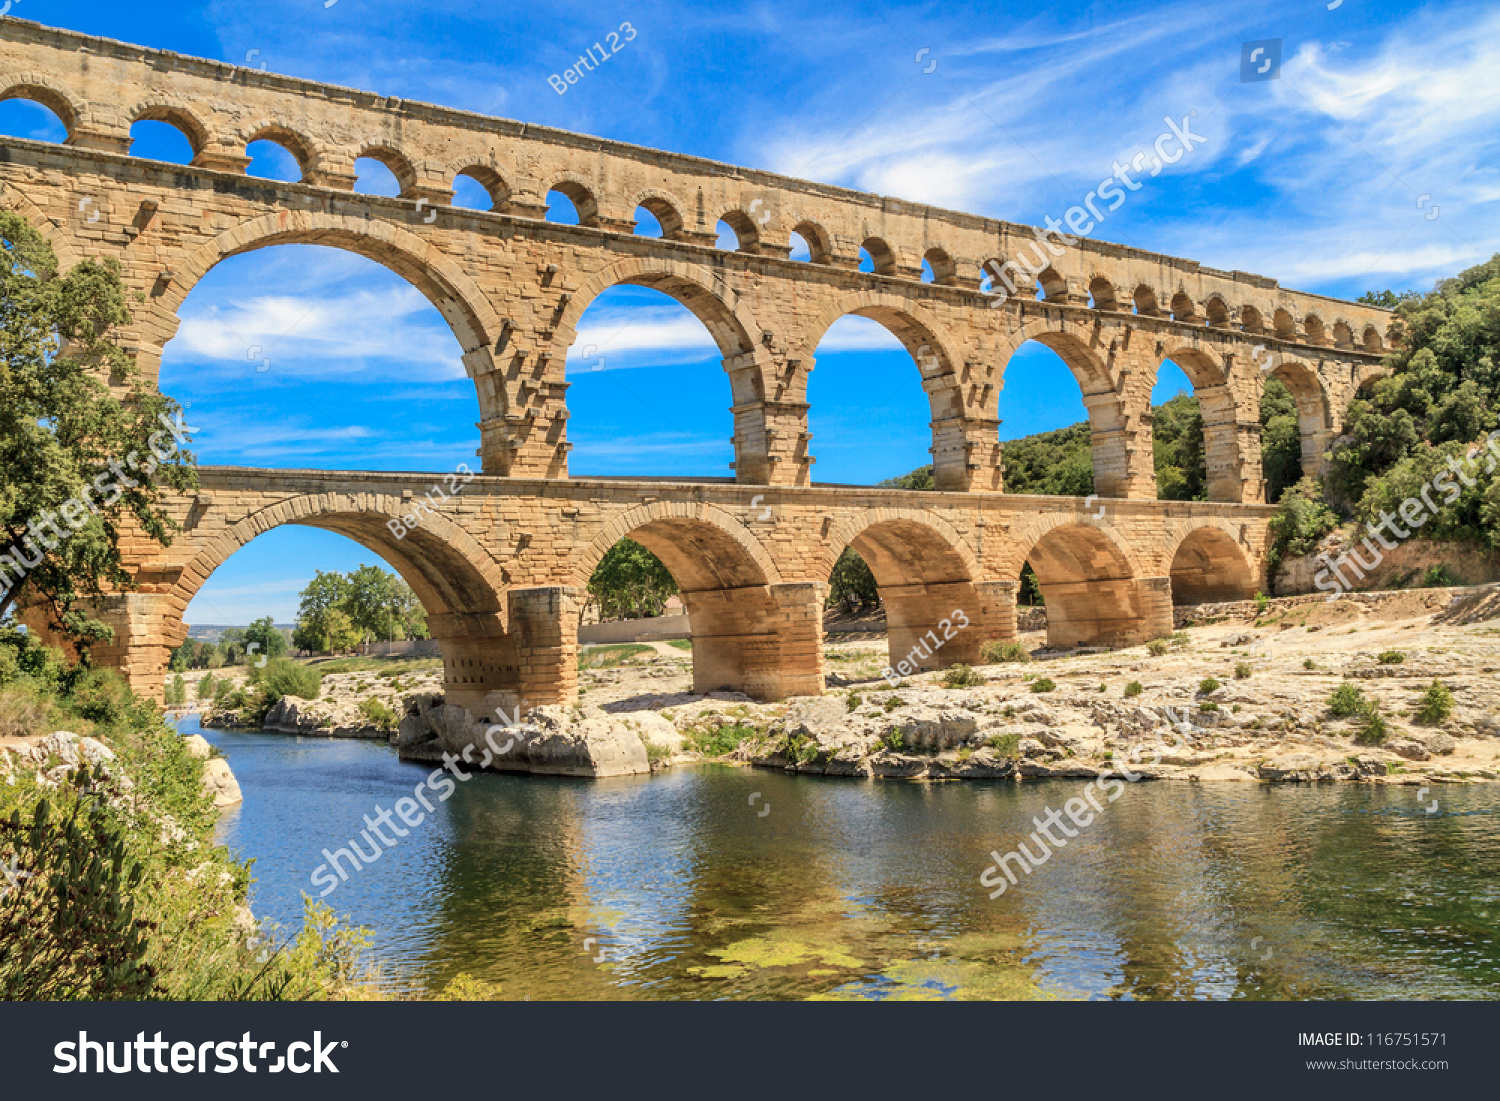 How Old Is The Aqueduct At Nimes 120